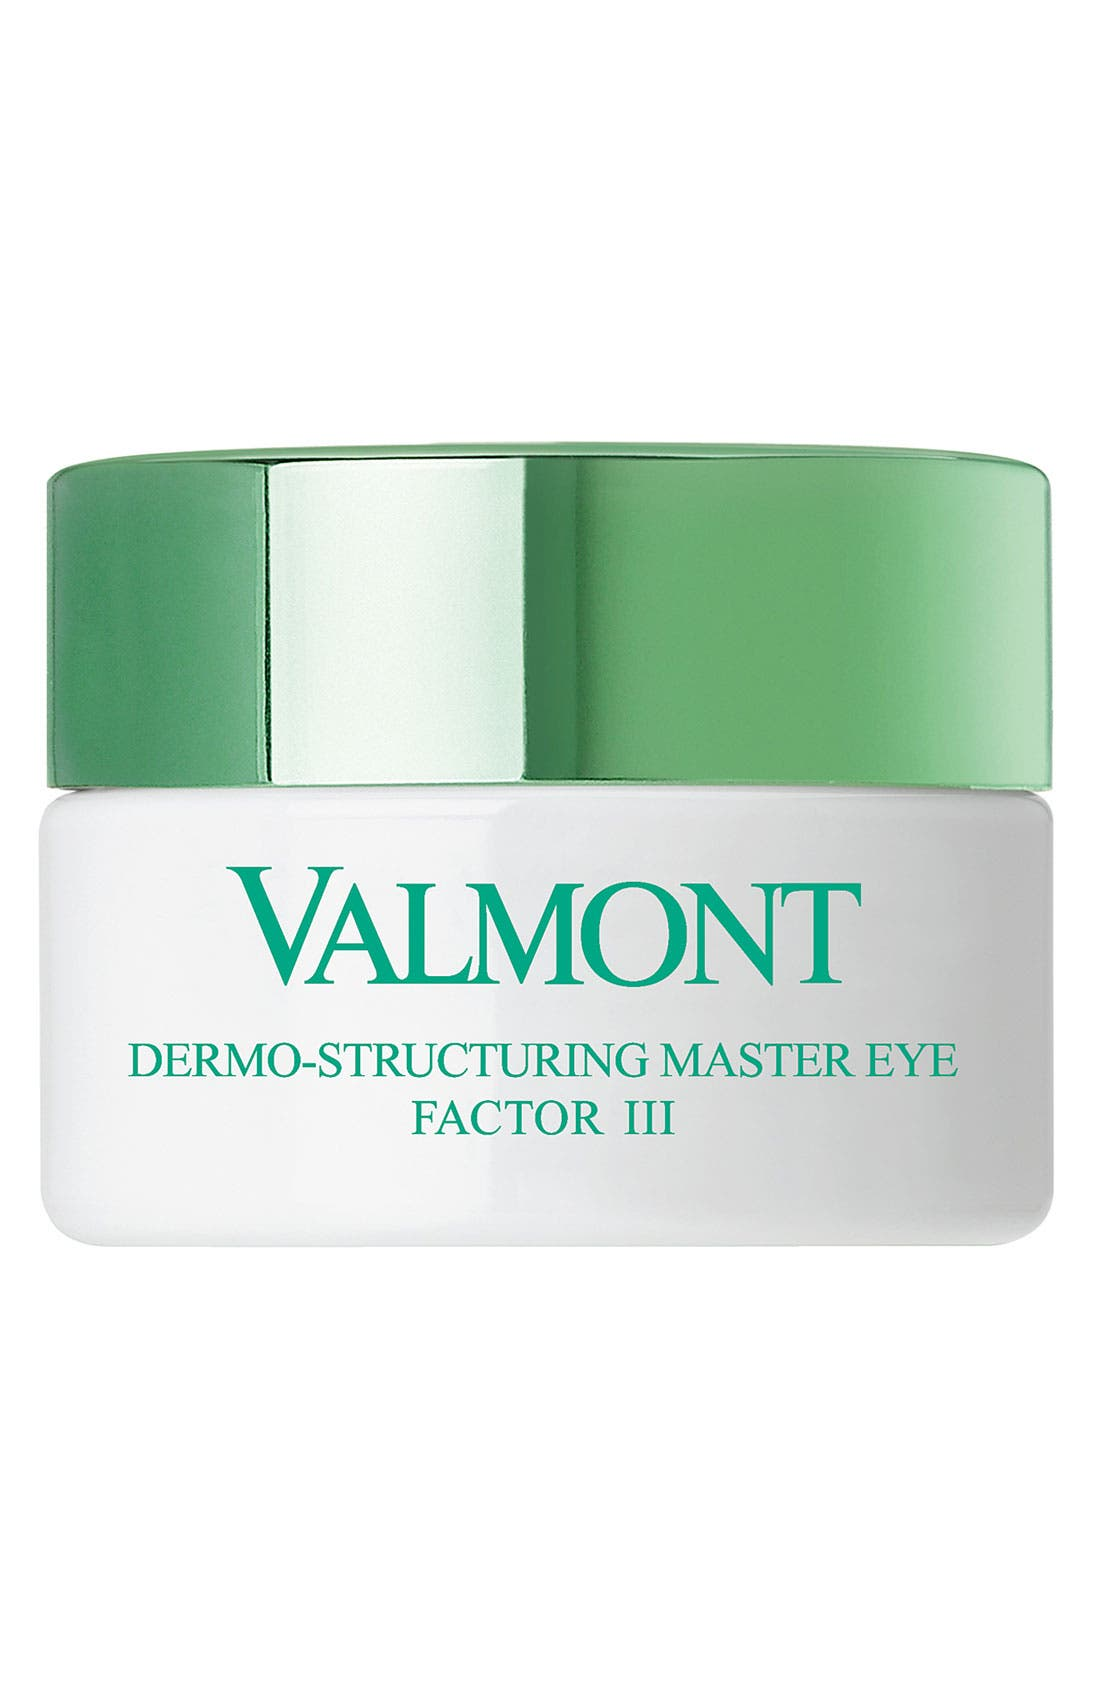 'Dermo-Structuring Master Eye Factor III' Cream,                         Main,                         color, 000